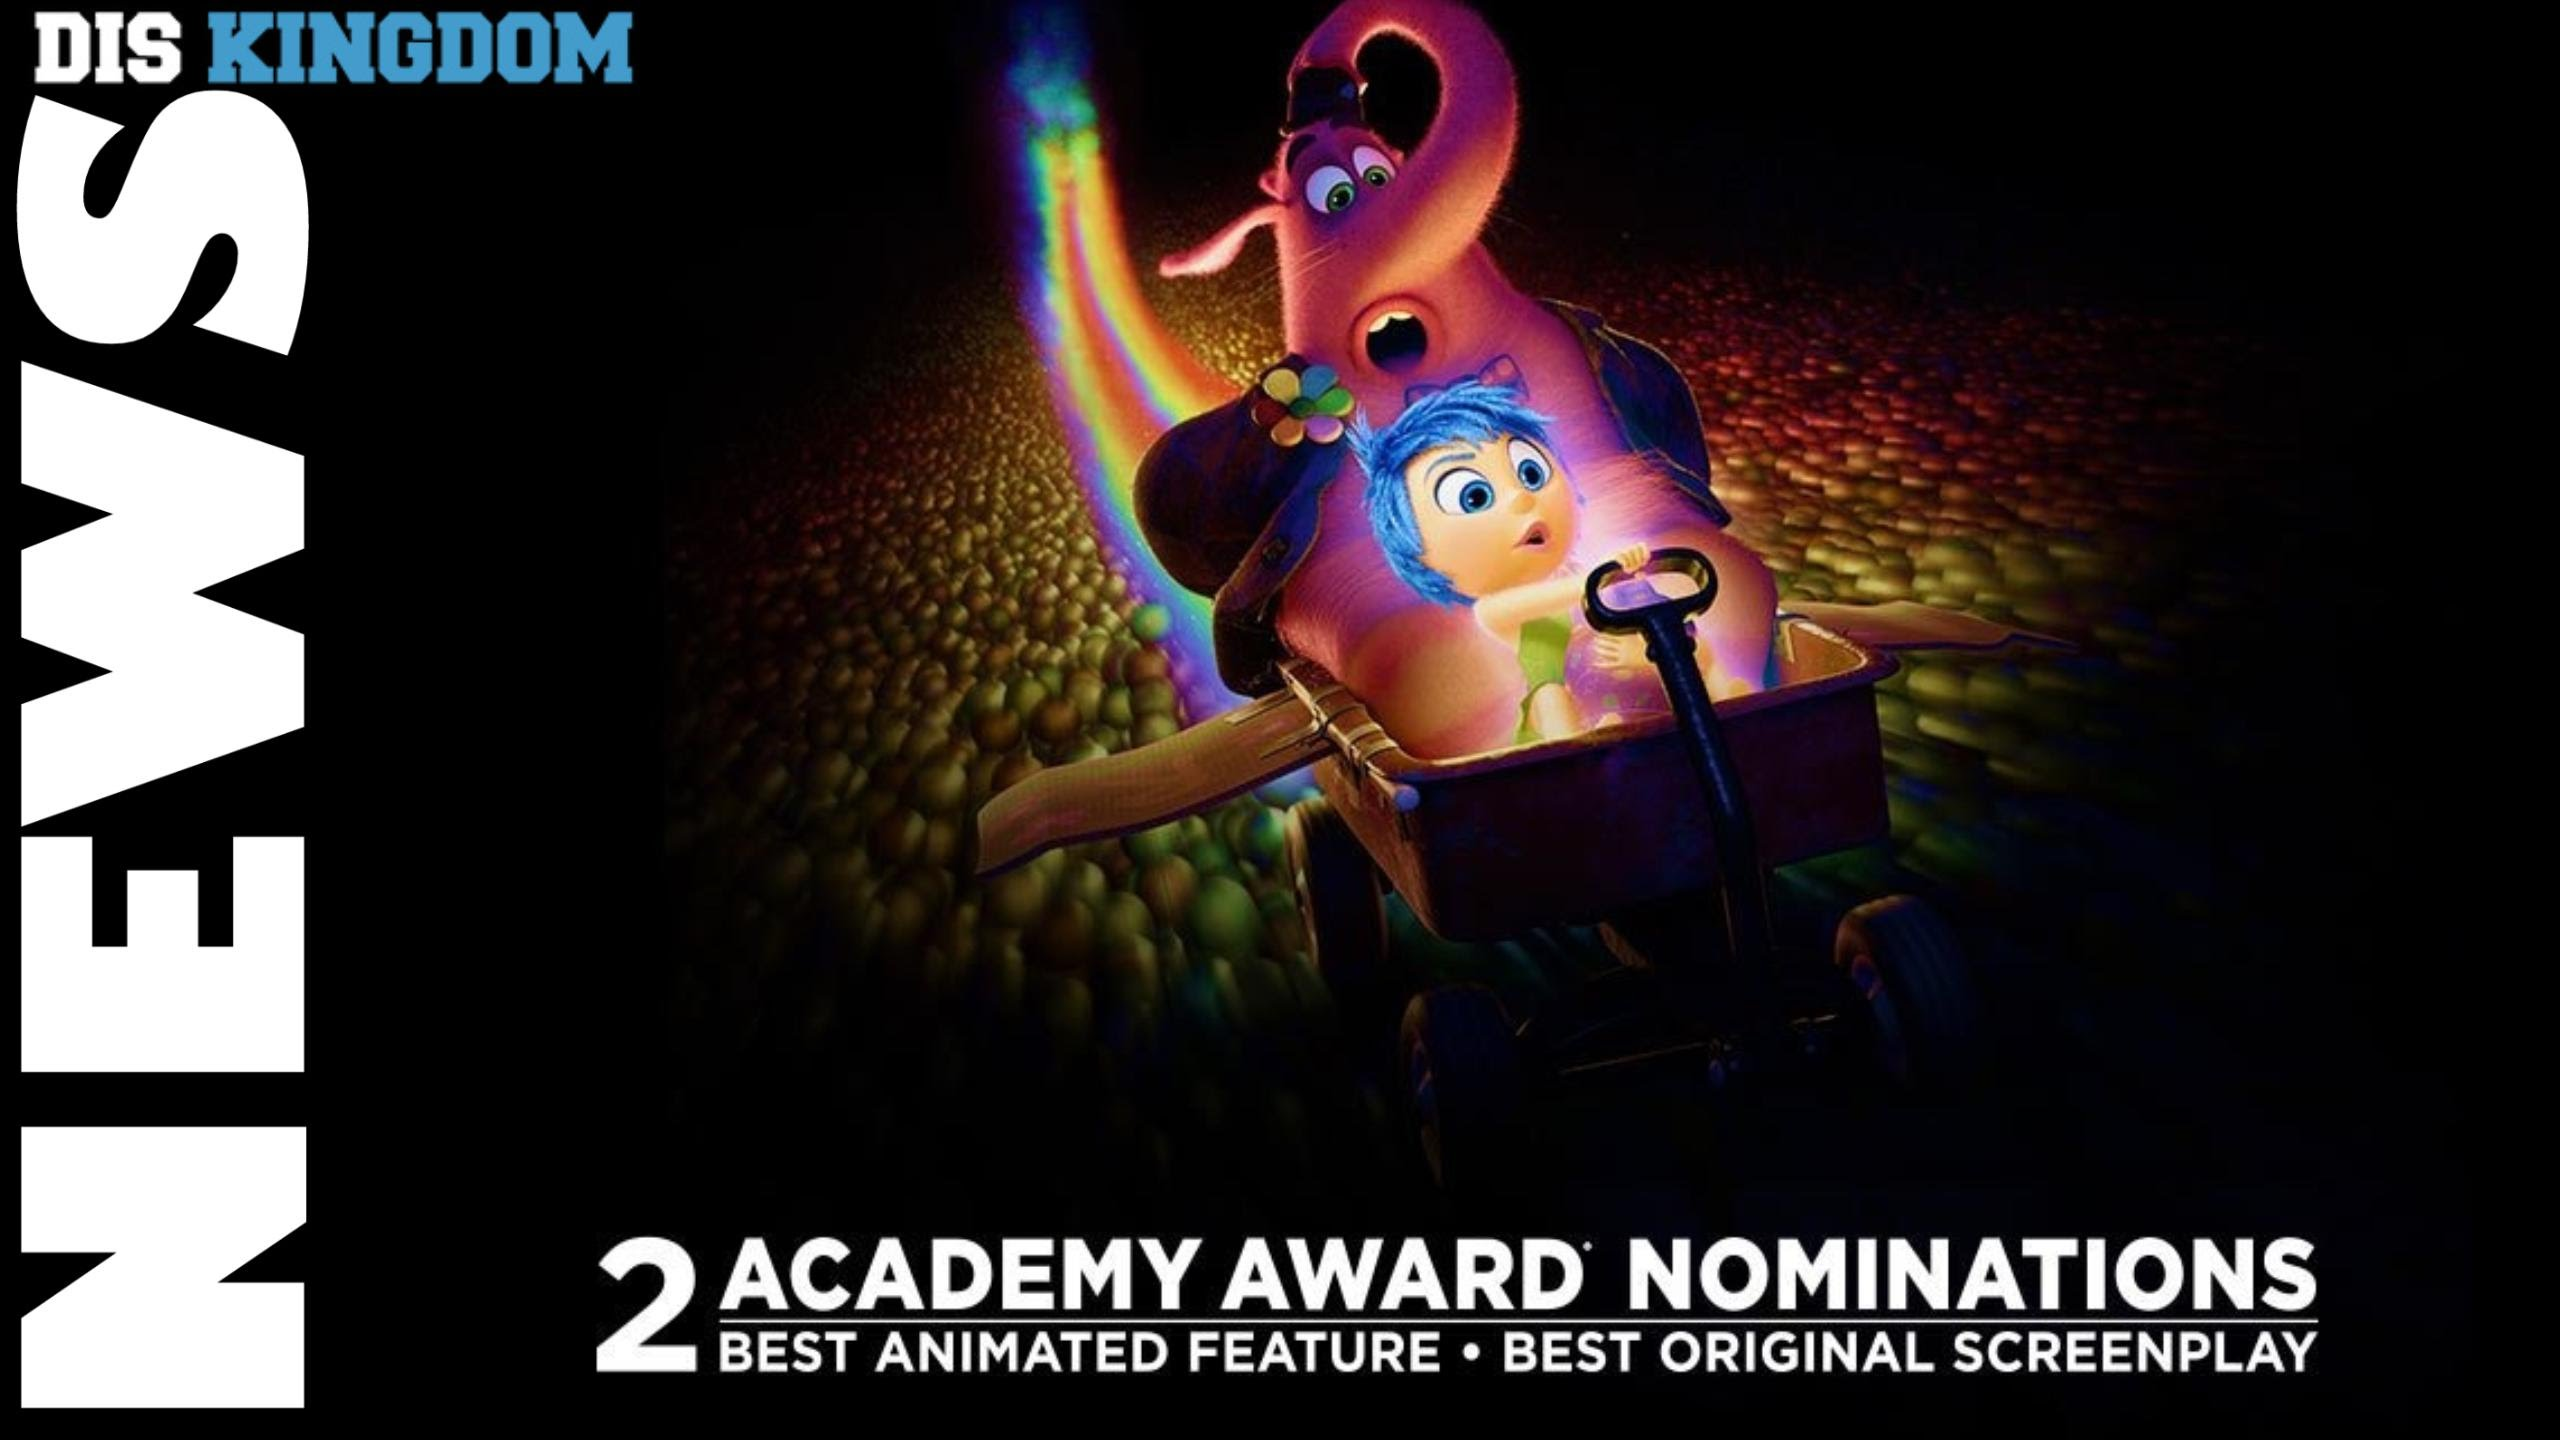 Details On The Disney Movies That Got Oscar Nominations